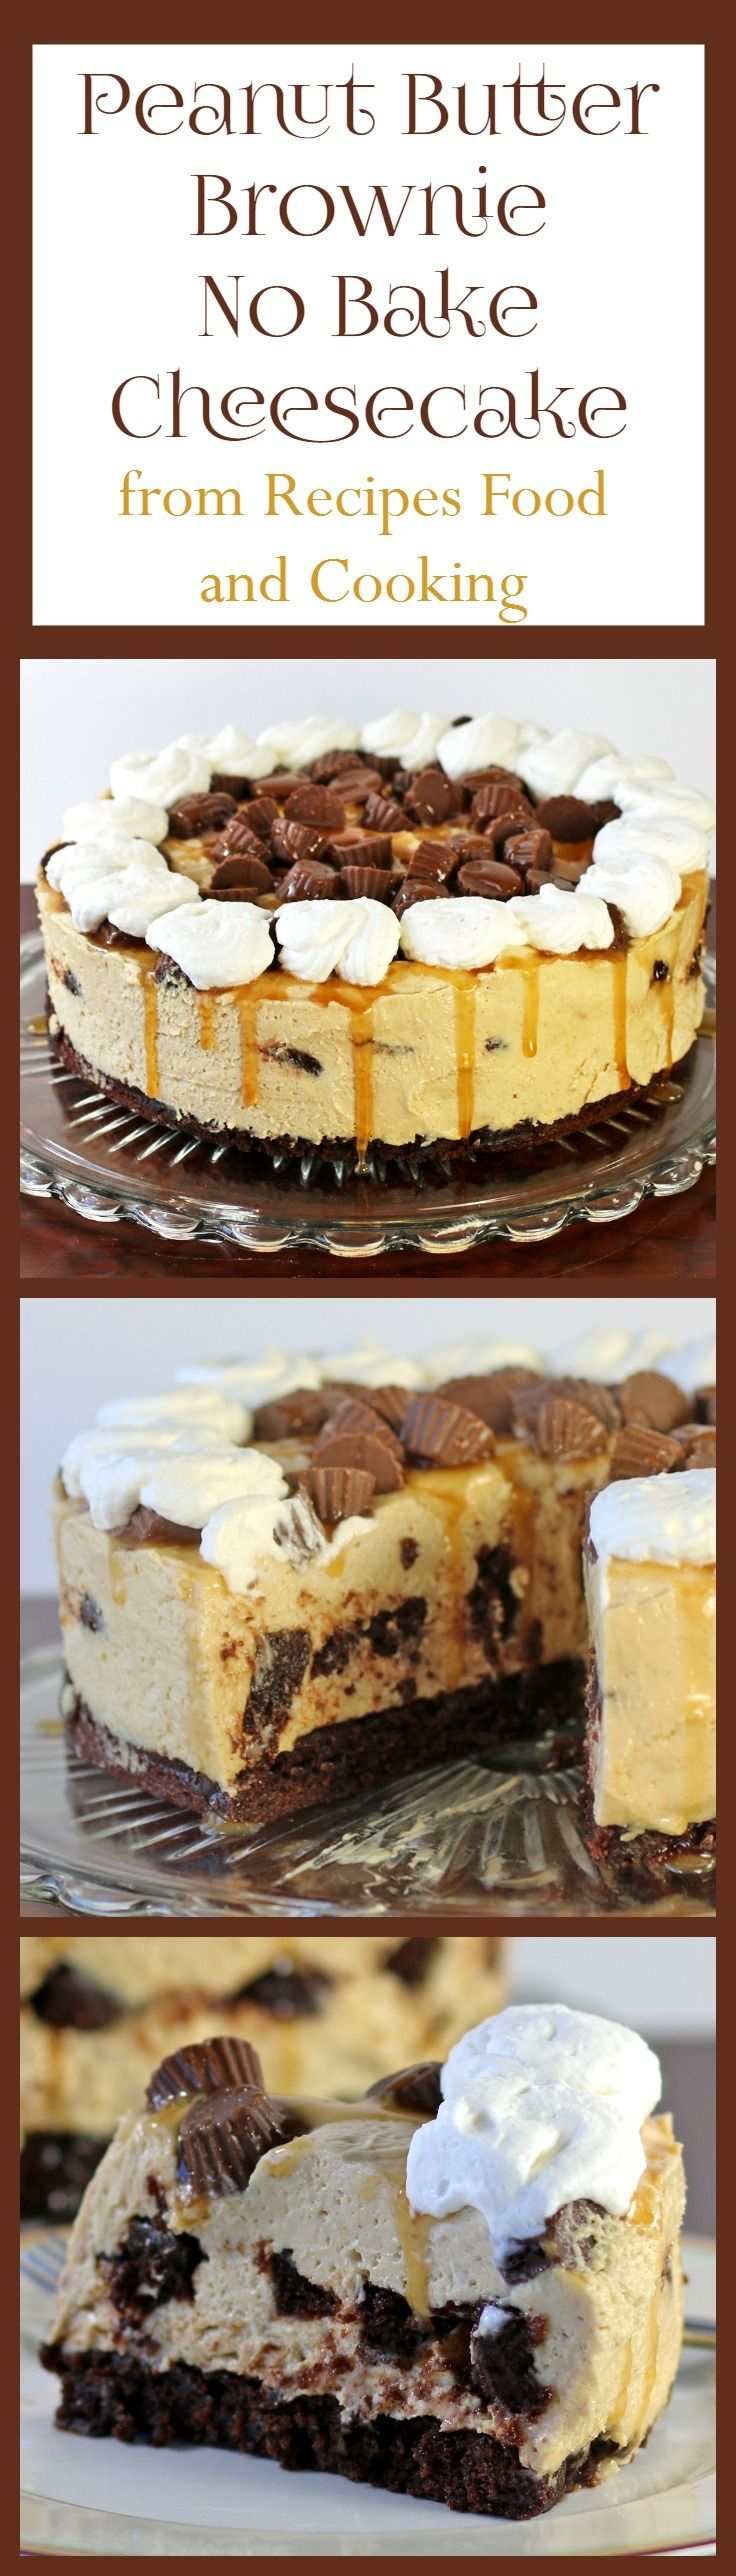 Peanut Butter Brownie No Bake Cheesecake #SundaySupper - Recipes, Food and Cooking